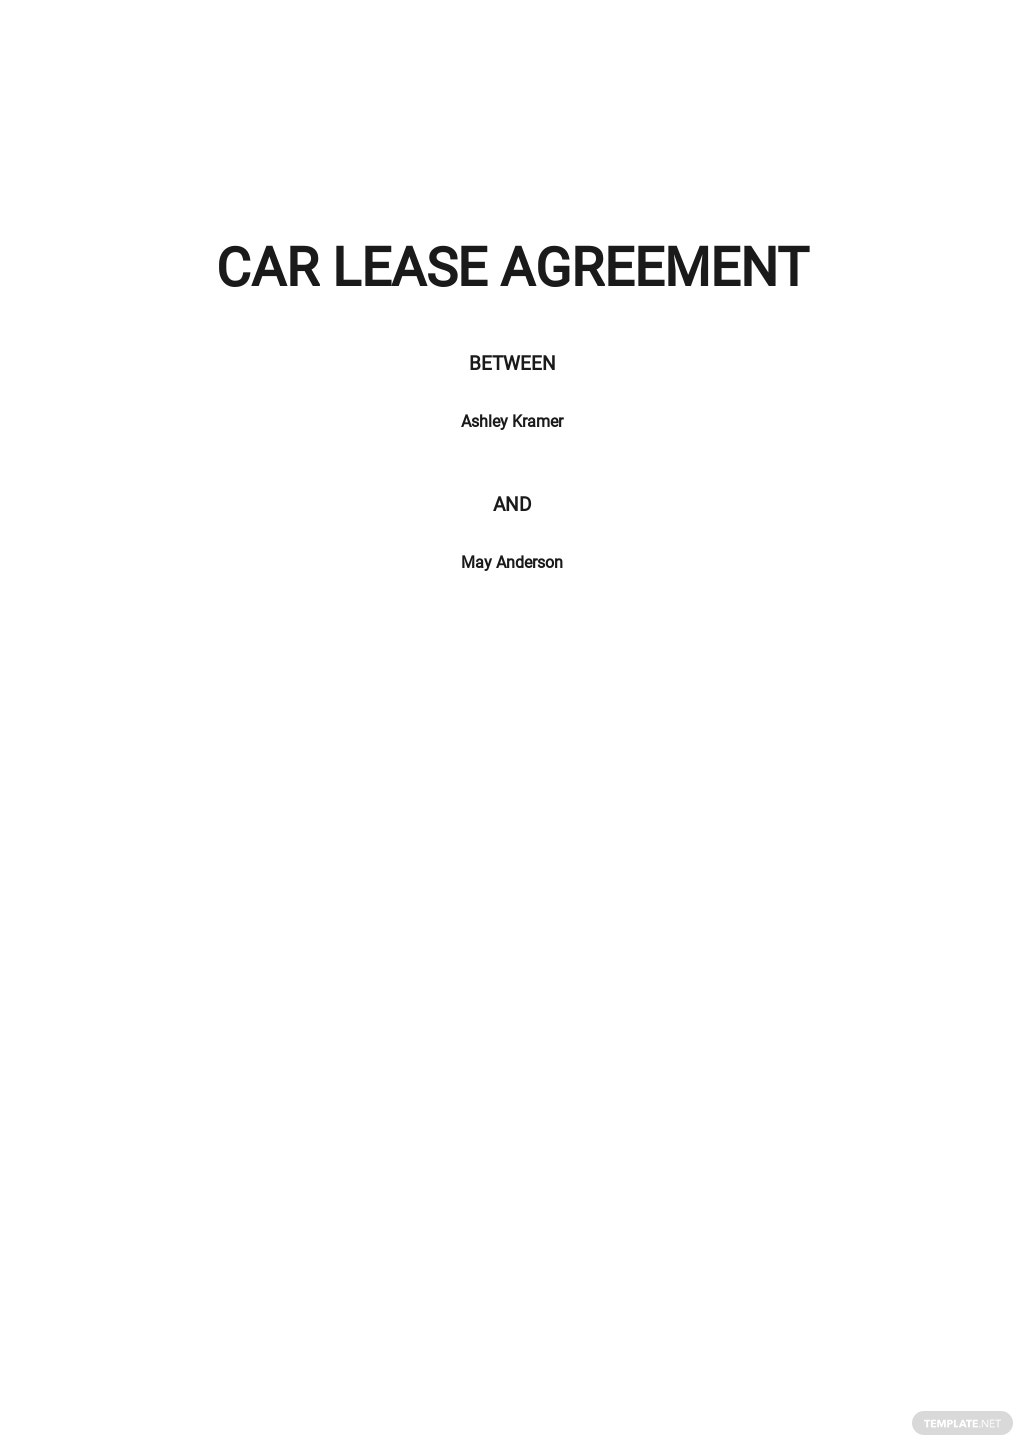 Free Car Lease Agreement Template.jpe